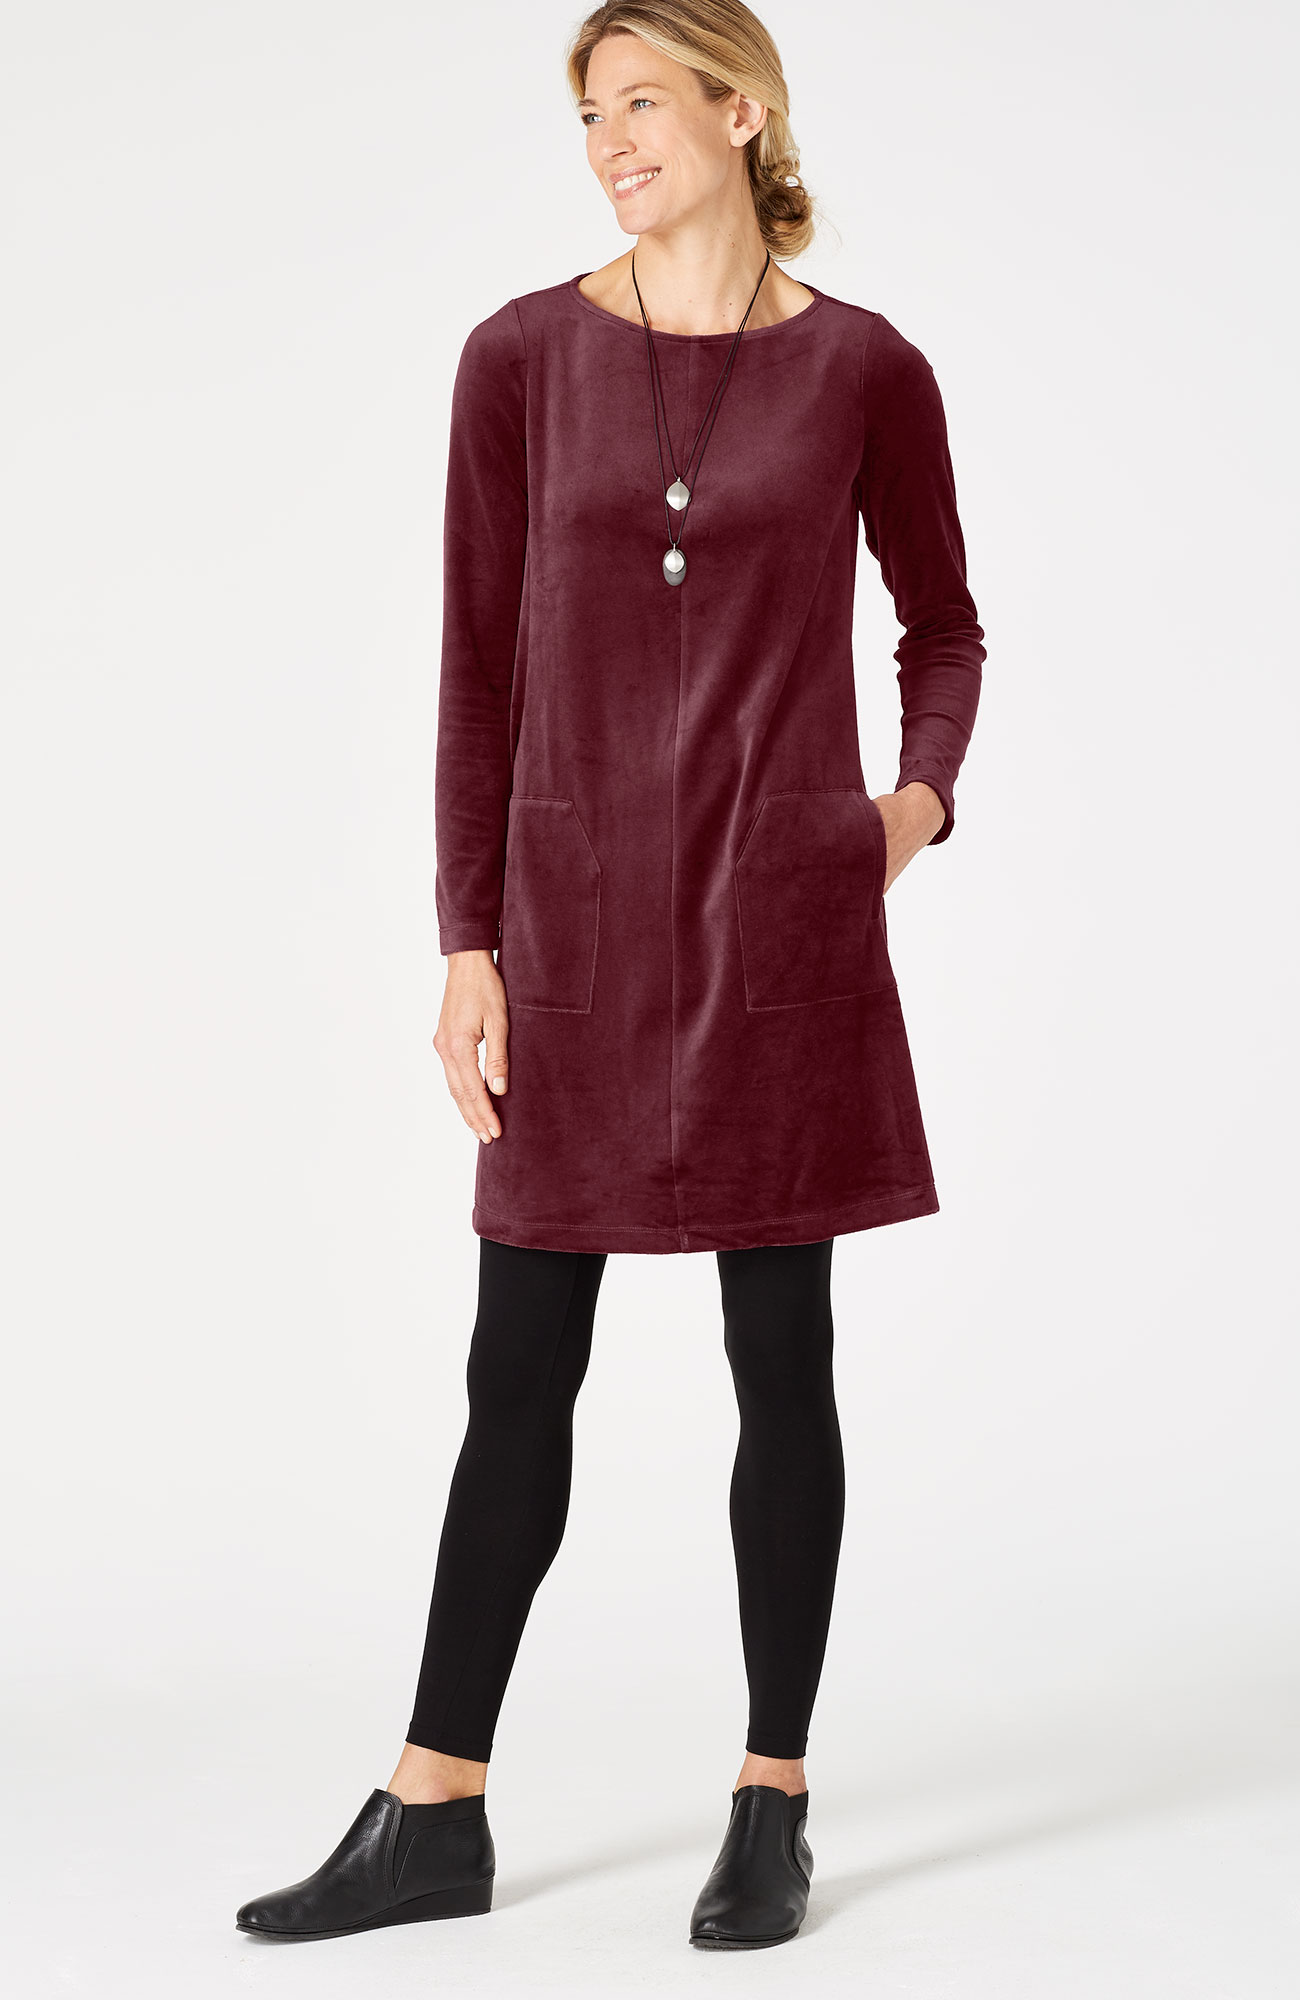 Pure Jill refined velour A-line dress